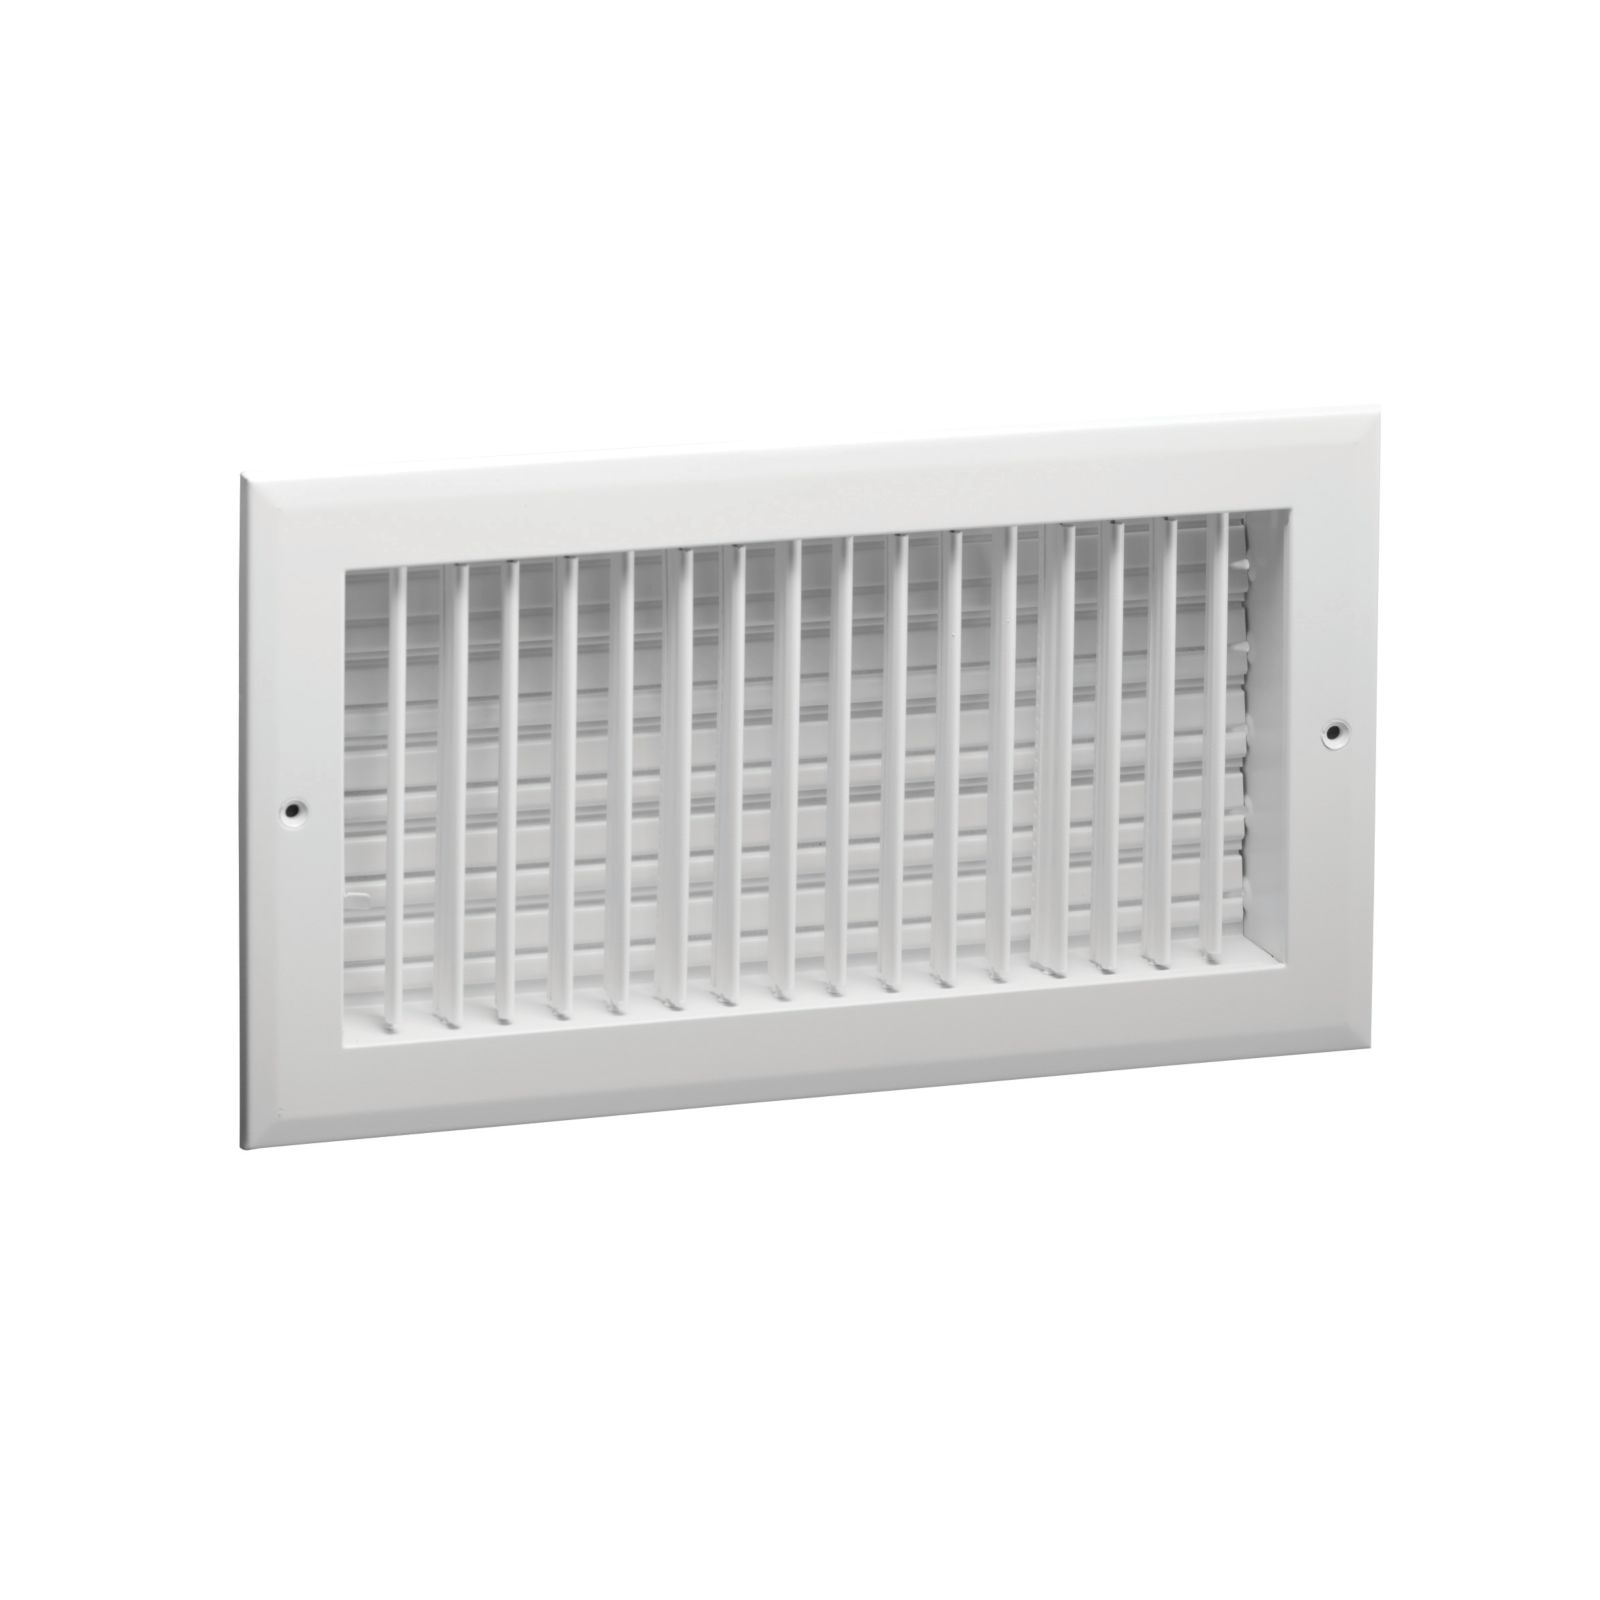 "Hart & Cooley 022450 - Aluminum Straight Blade 4-Way Sidewall/Ceiling Register, Multi-Shutter Damper, White Finish, 12"" X 4"""